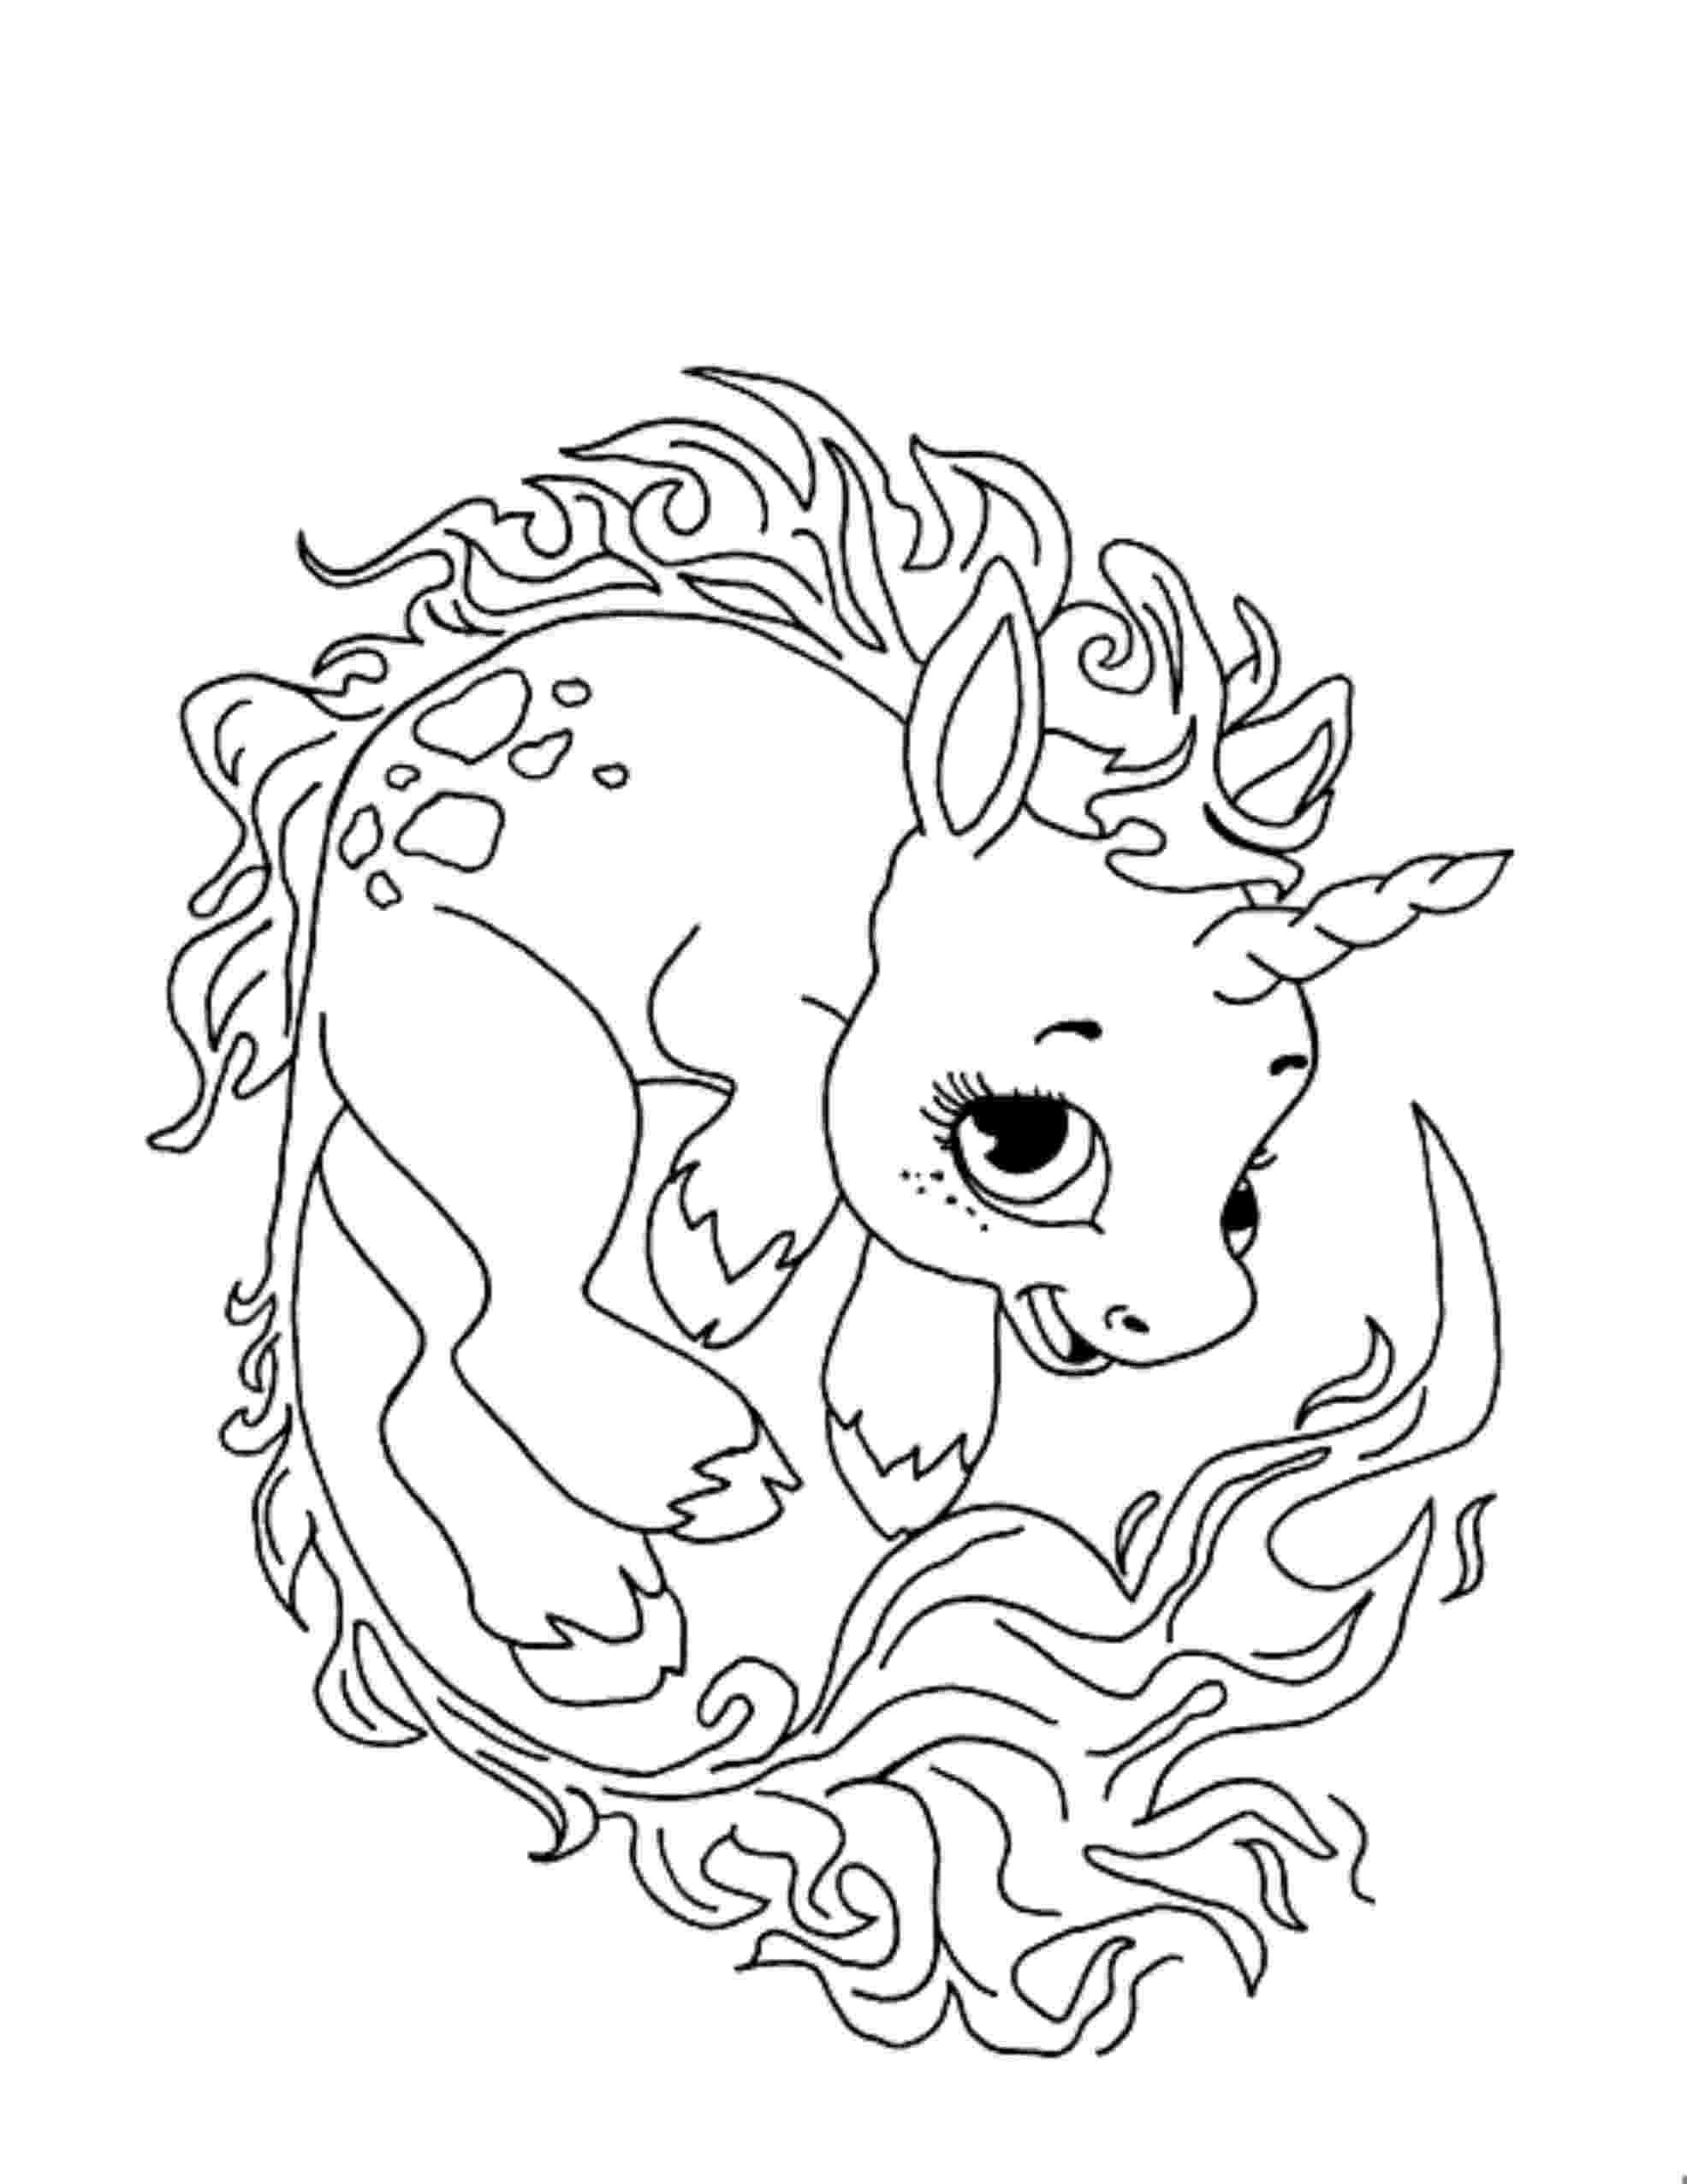 unicorn coloring pages for adults print download unicorn coloring pages for children coloring for unicorn adults pages